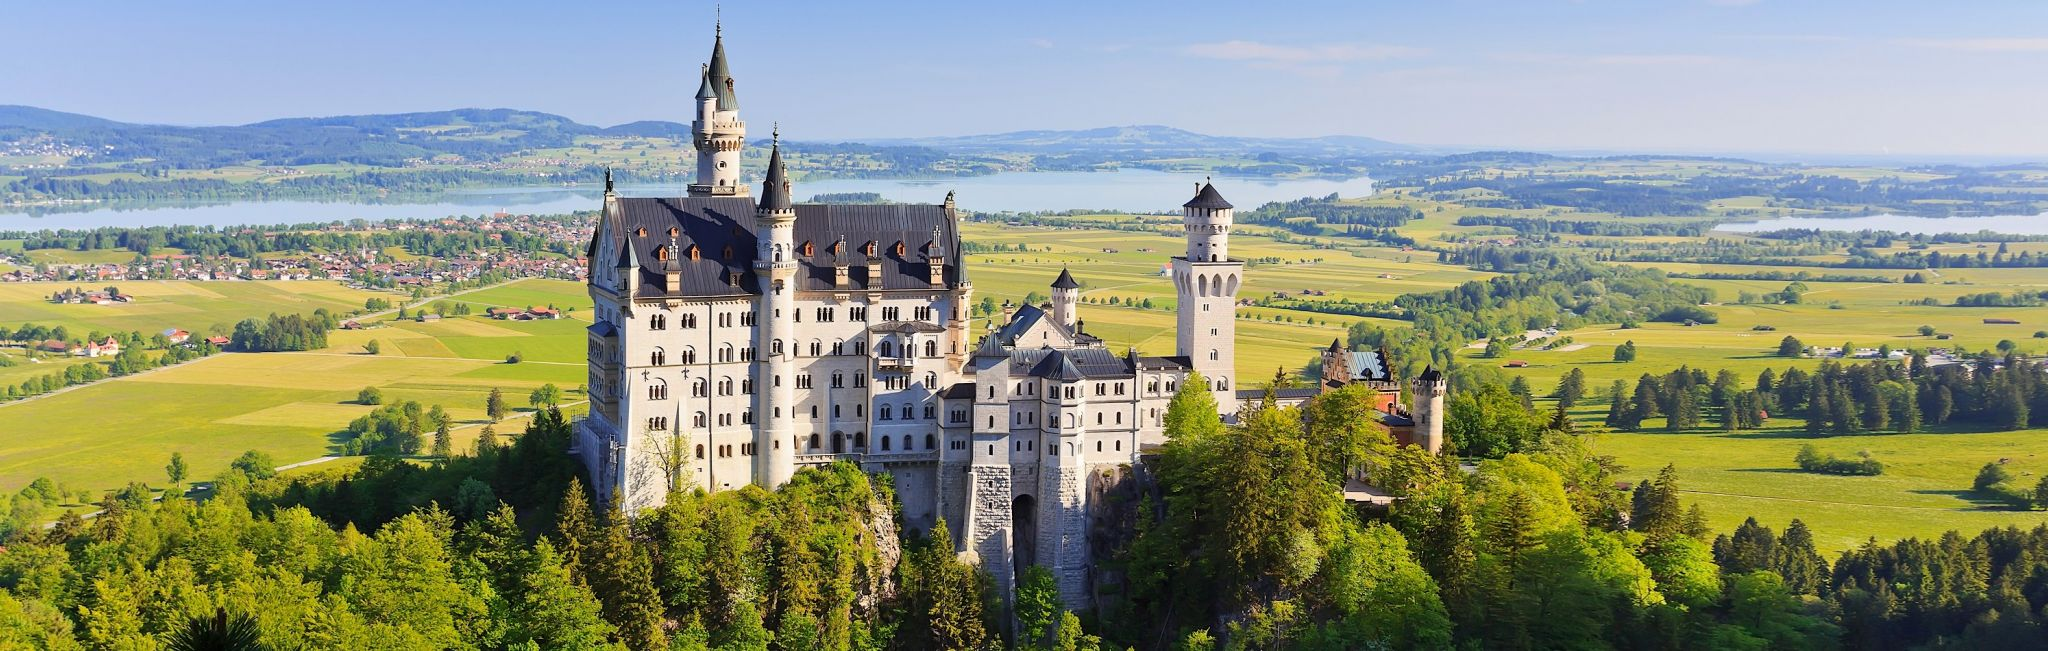 A castle in Bavaria, Germany.